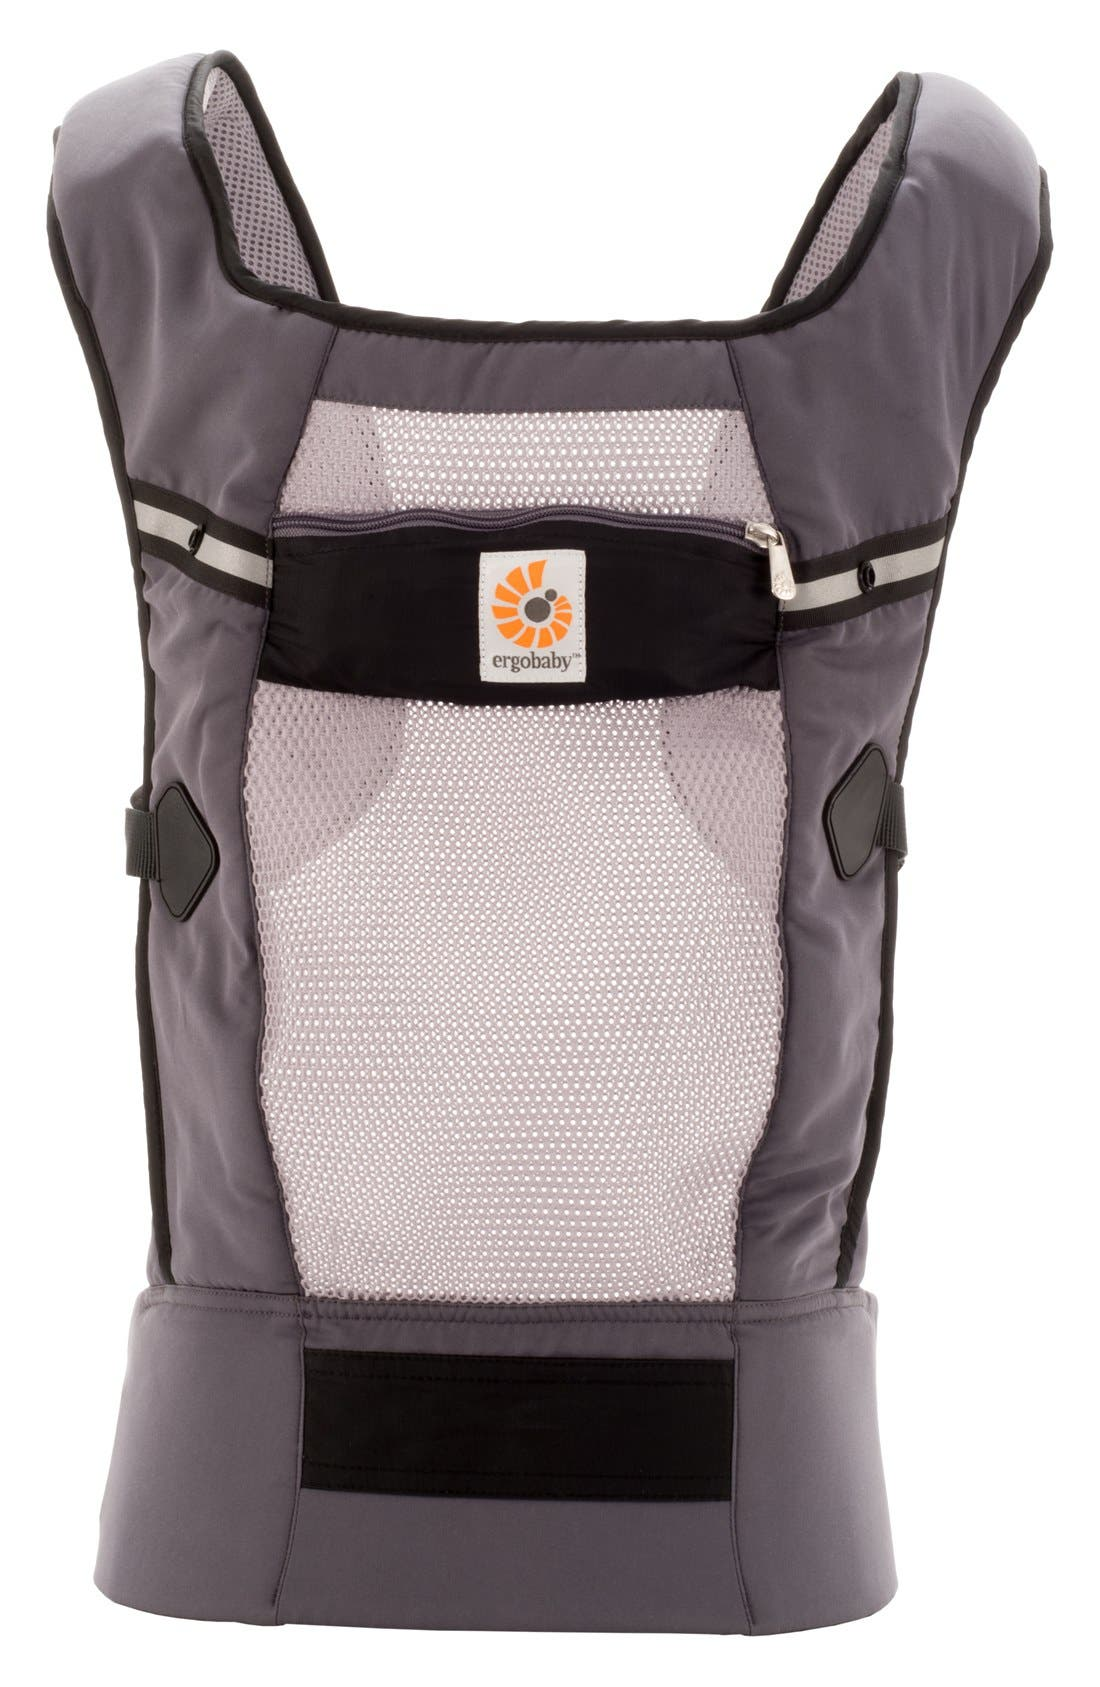 ERGOBABY,                             'Performance' Baby Carrier,                             Main thumbnail 1, color,                             025